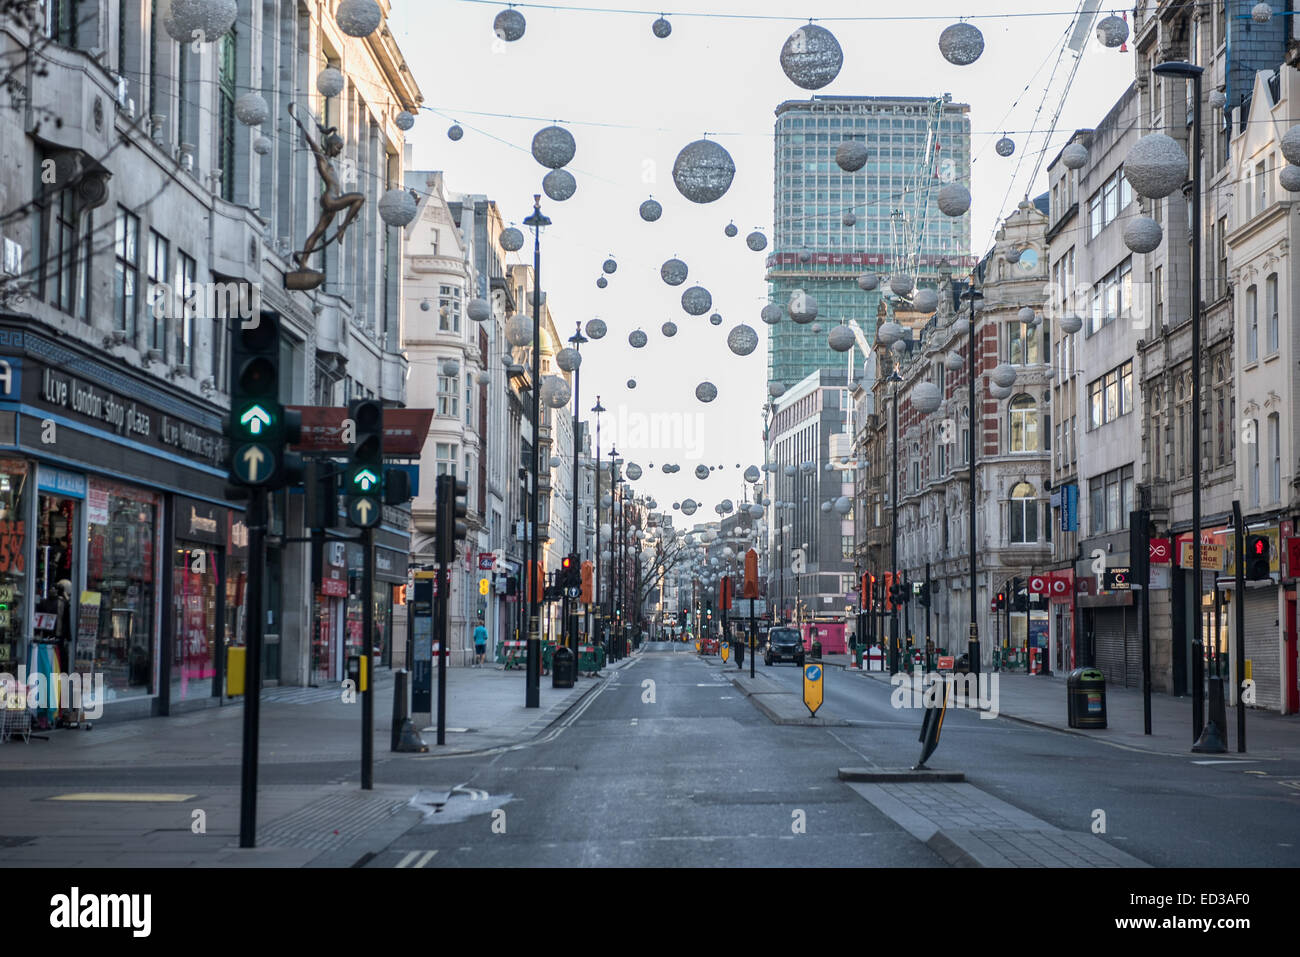 London, UK. 25th Dec, 2014. Oxford Street in London on early Christmas morning. Credit:  Piero Cruciatti/Alamy Live - Stock Image